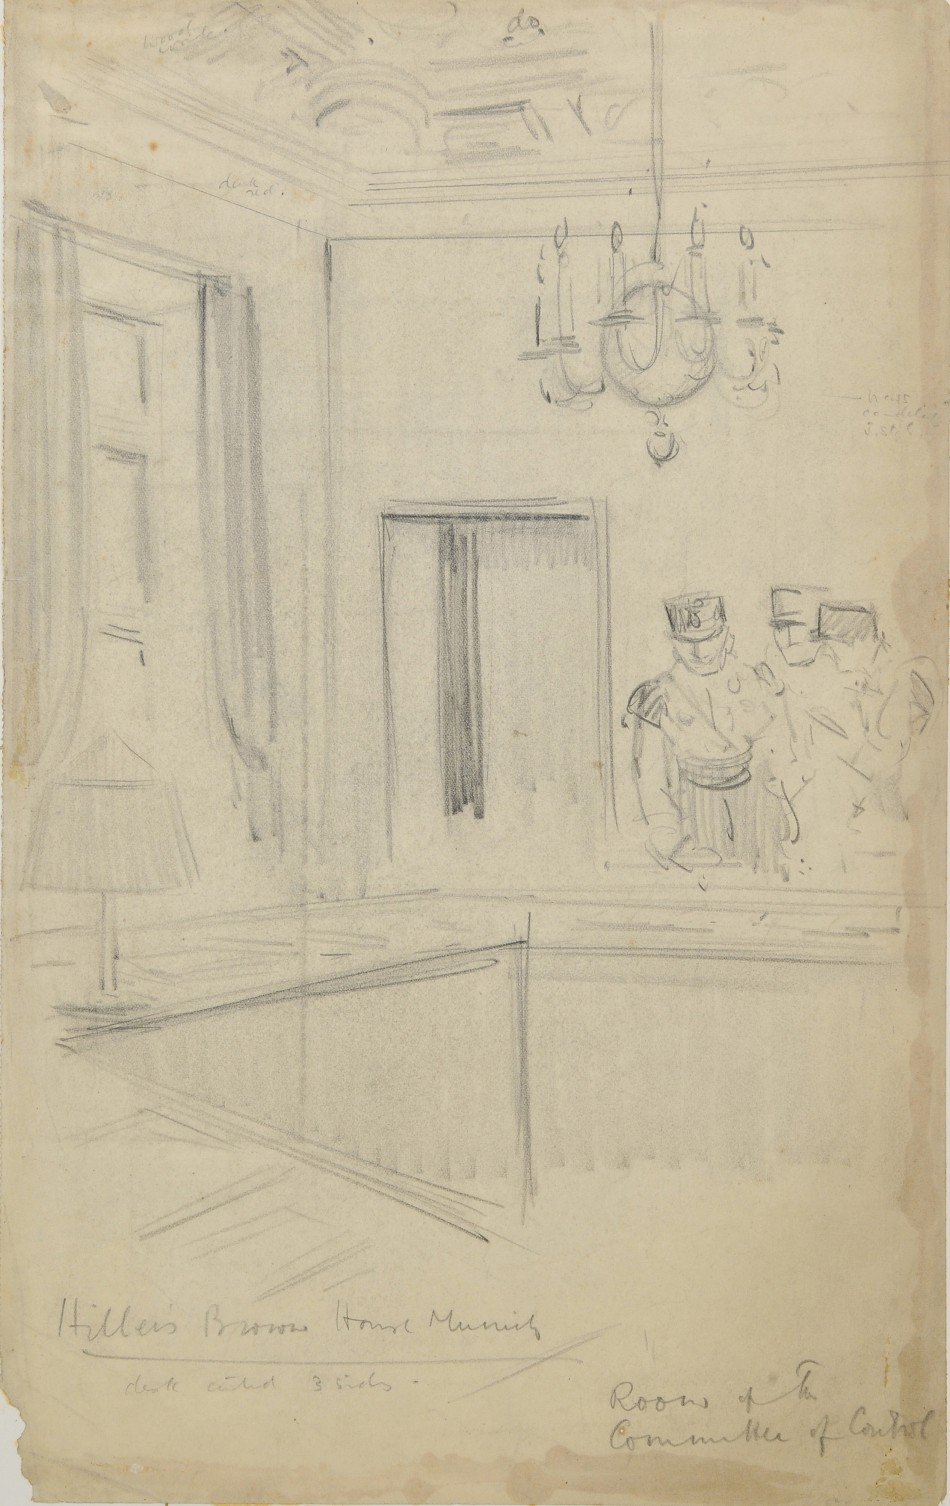 This drawing by Helen McKie shows Nazi officials inside a committee room at Hitlers Munich headquarters